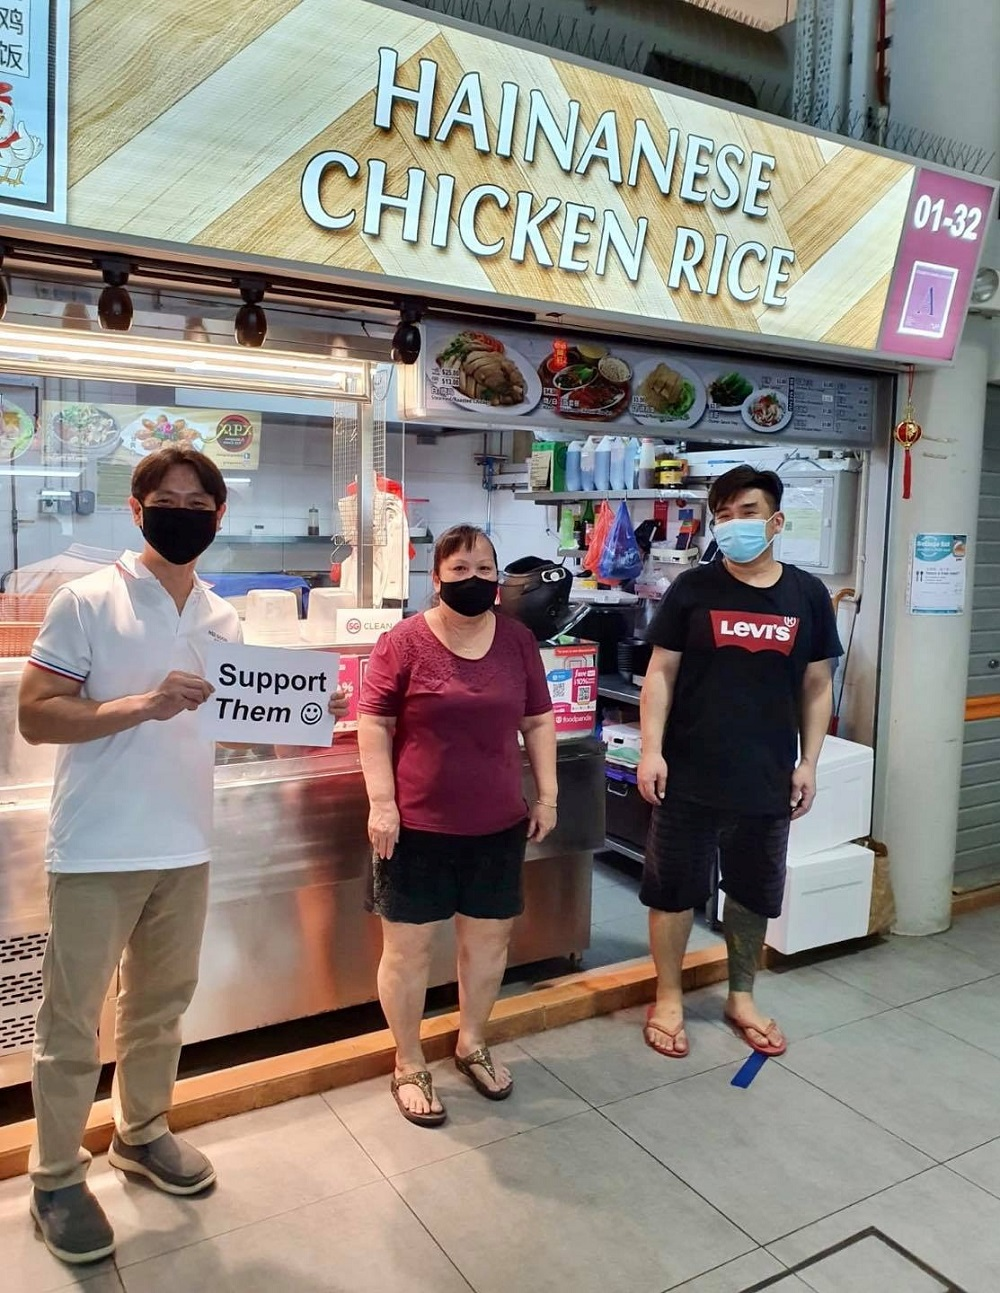 Singapore Member of Parliament Louis Ng holds a placard calling for support for local food businesses during a visit to Yishun Park Hawker Centre in Singapore, in this photo posted on Facebook June 20, 2020. — Picture from Facebook/Louis Ng via Reuters